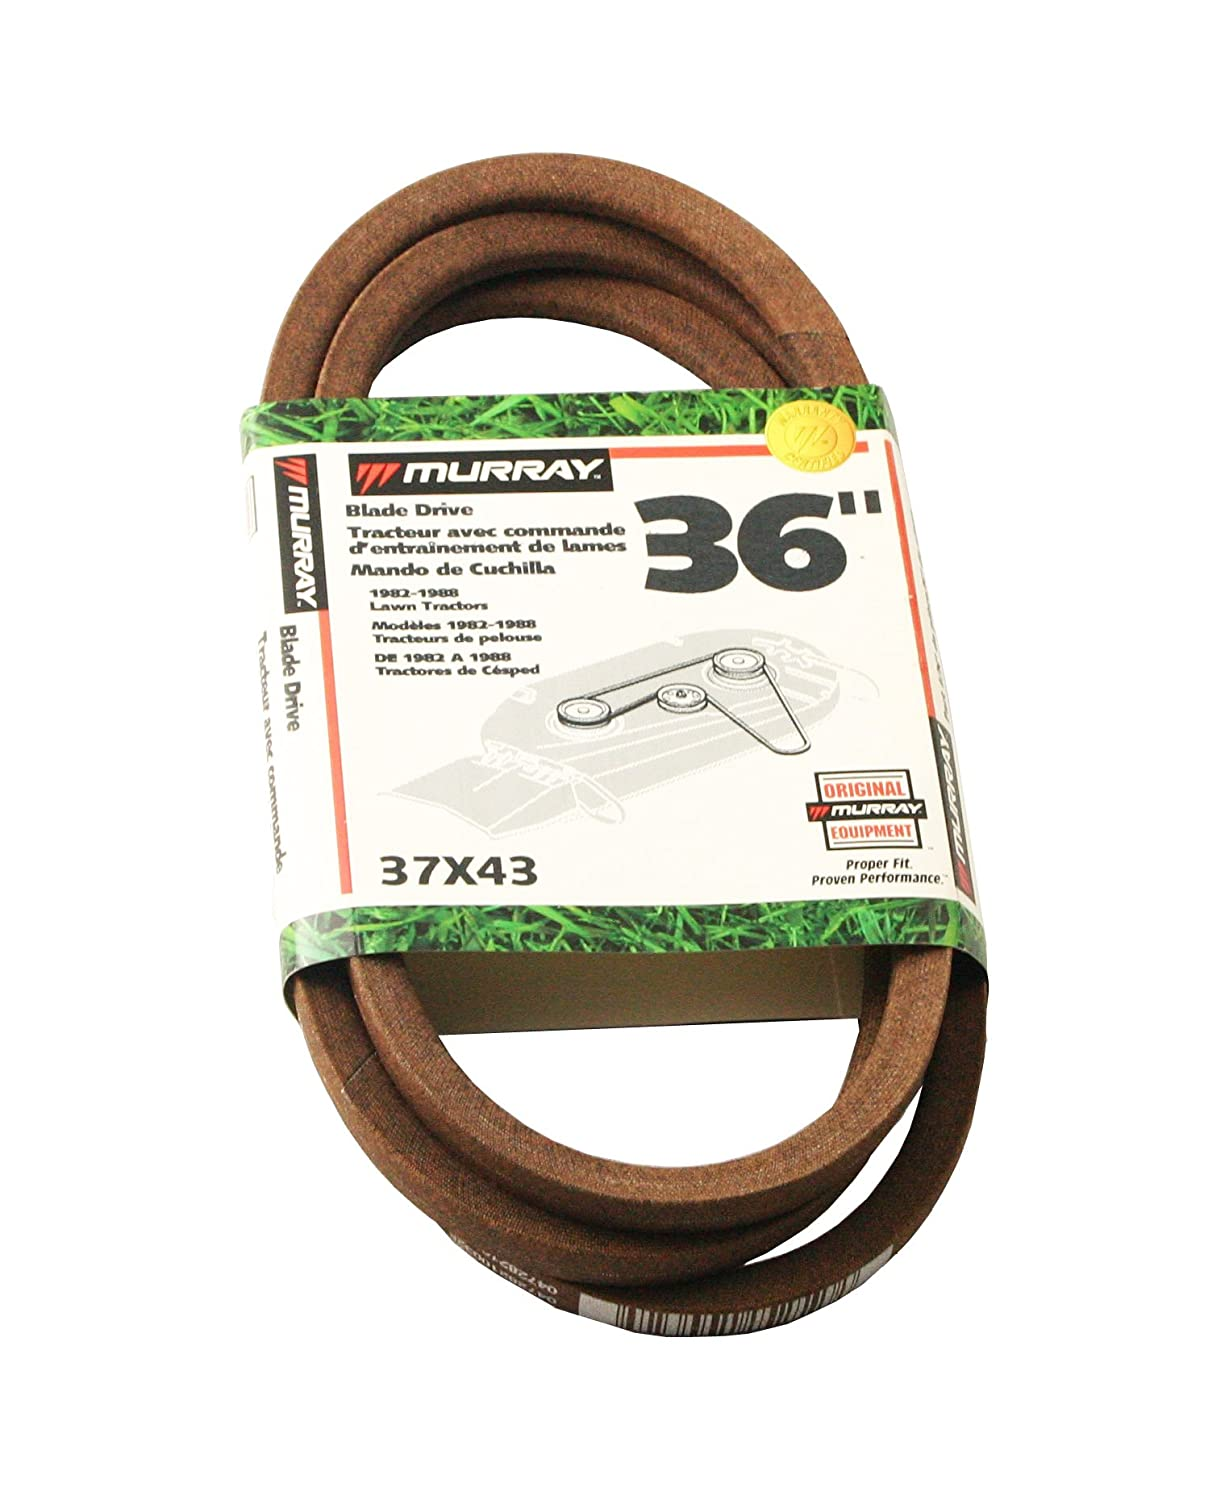 Murray 37x43ma Blade Drive Belt For Lawn Mowers Tractor Wiring Harness Garden Outdoor